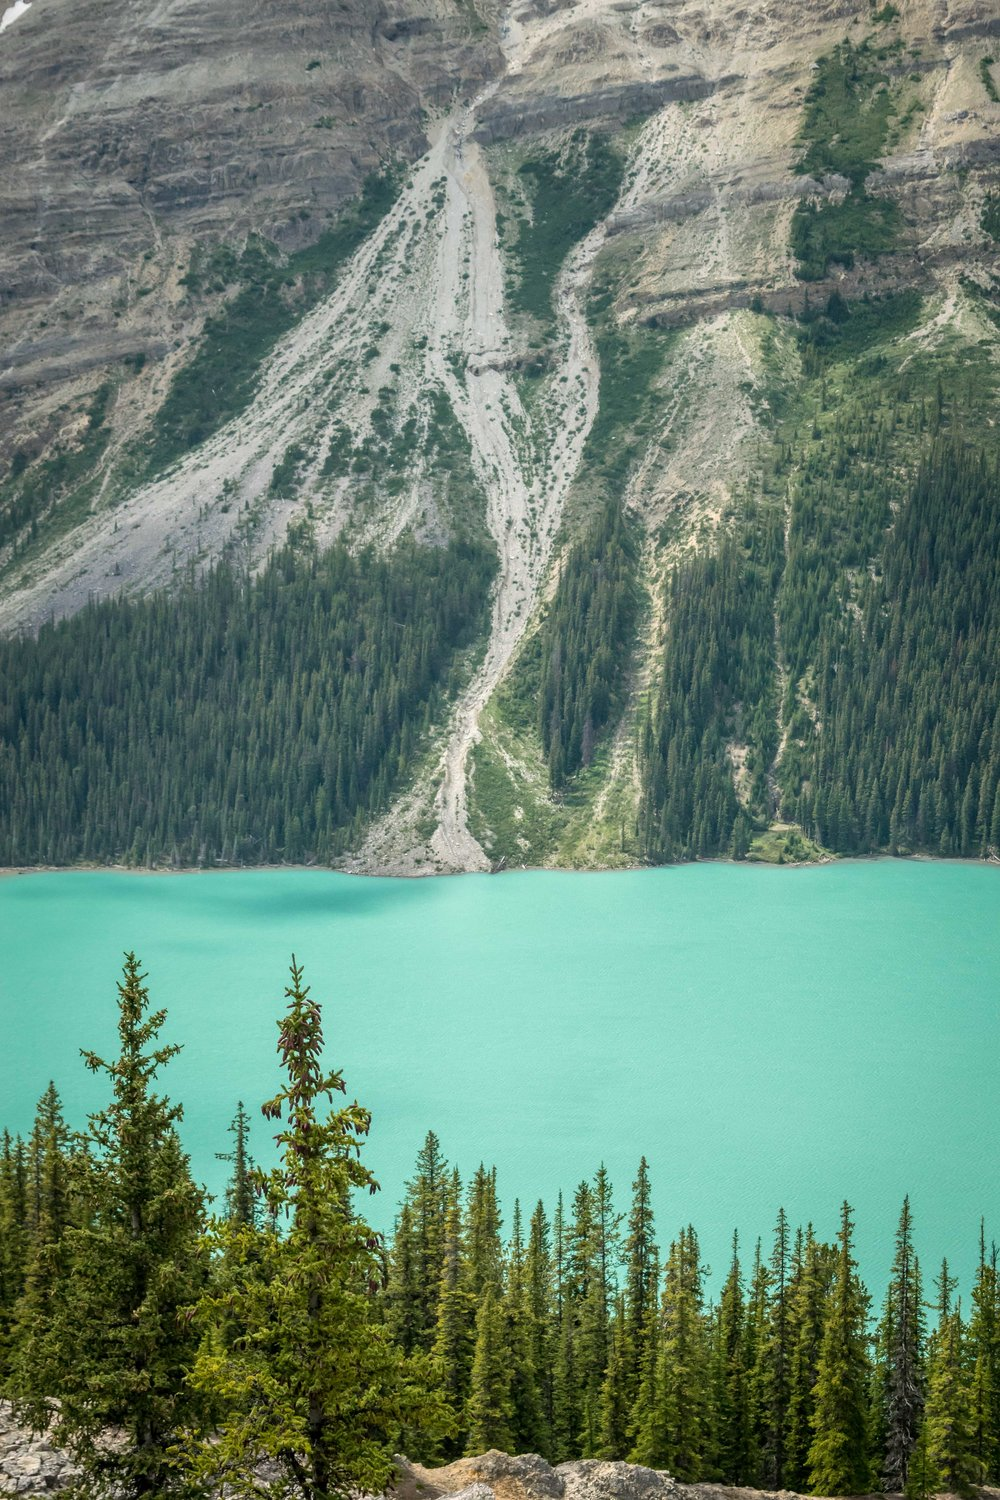 Turquoise water of Peyto Lake